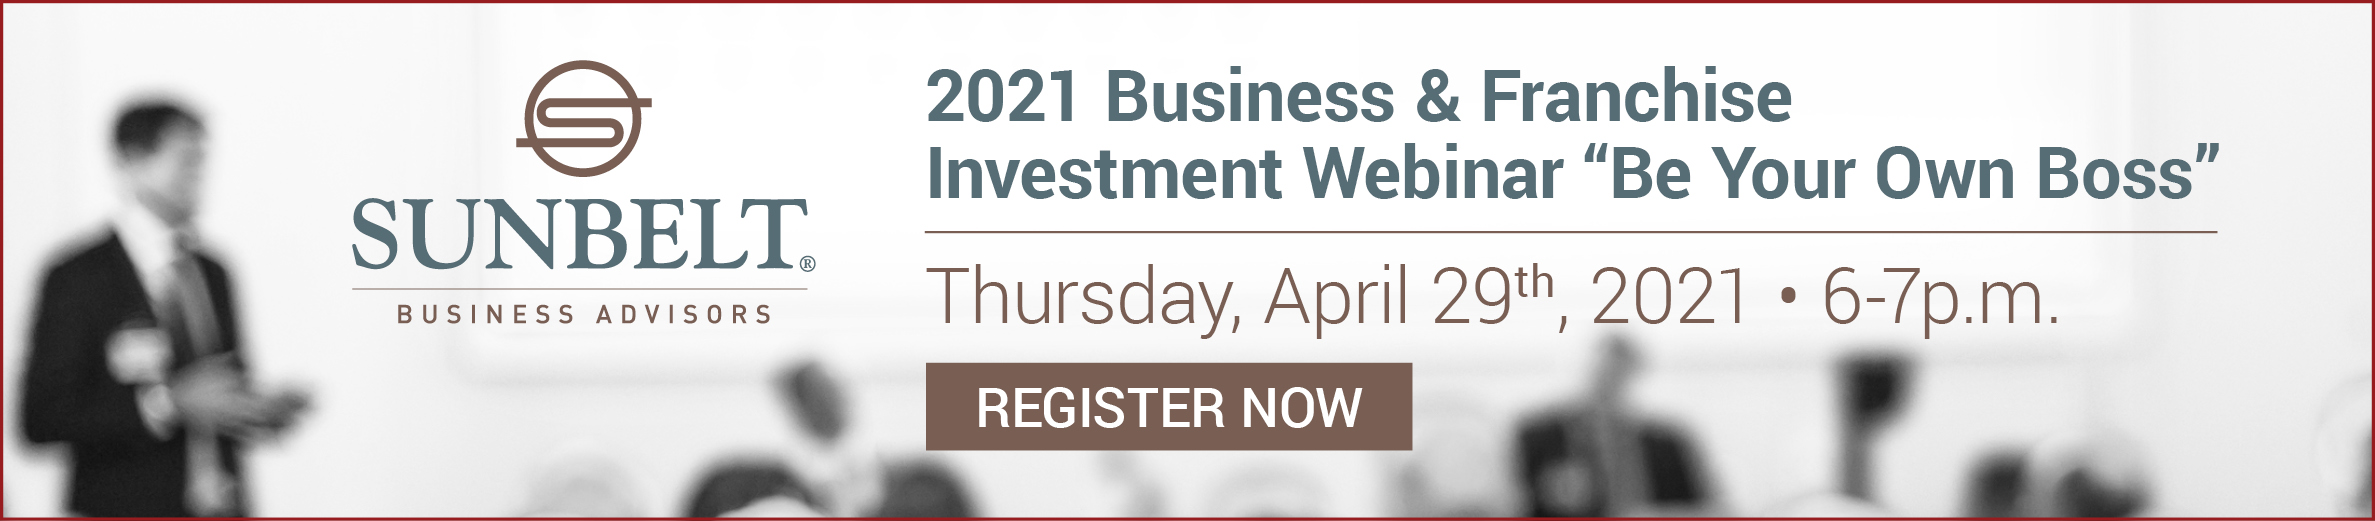 "2021 Business & Franchise Investment Webinar ""Be Your Own Boss"" - Thursday, April 29th, 2021 - 6-7pm - Register now"